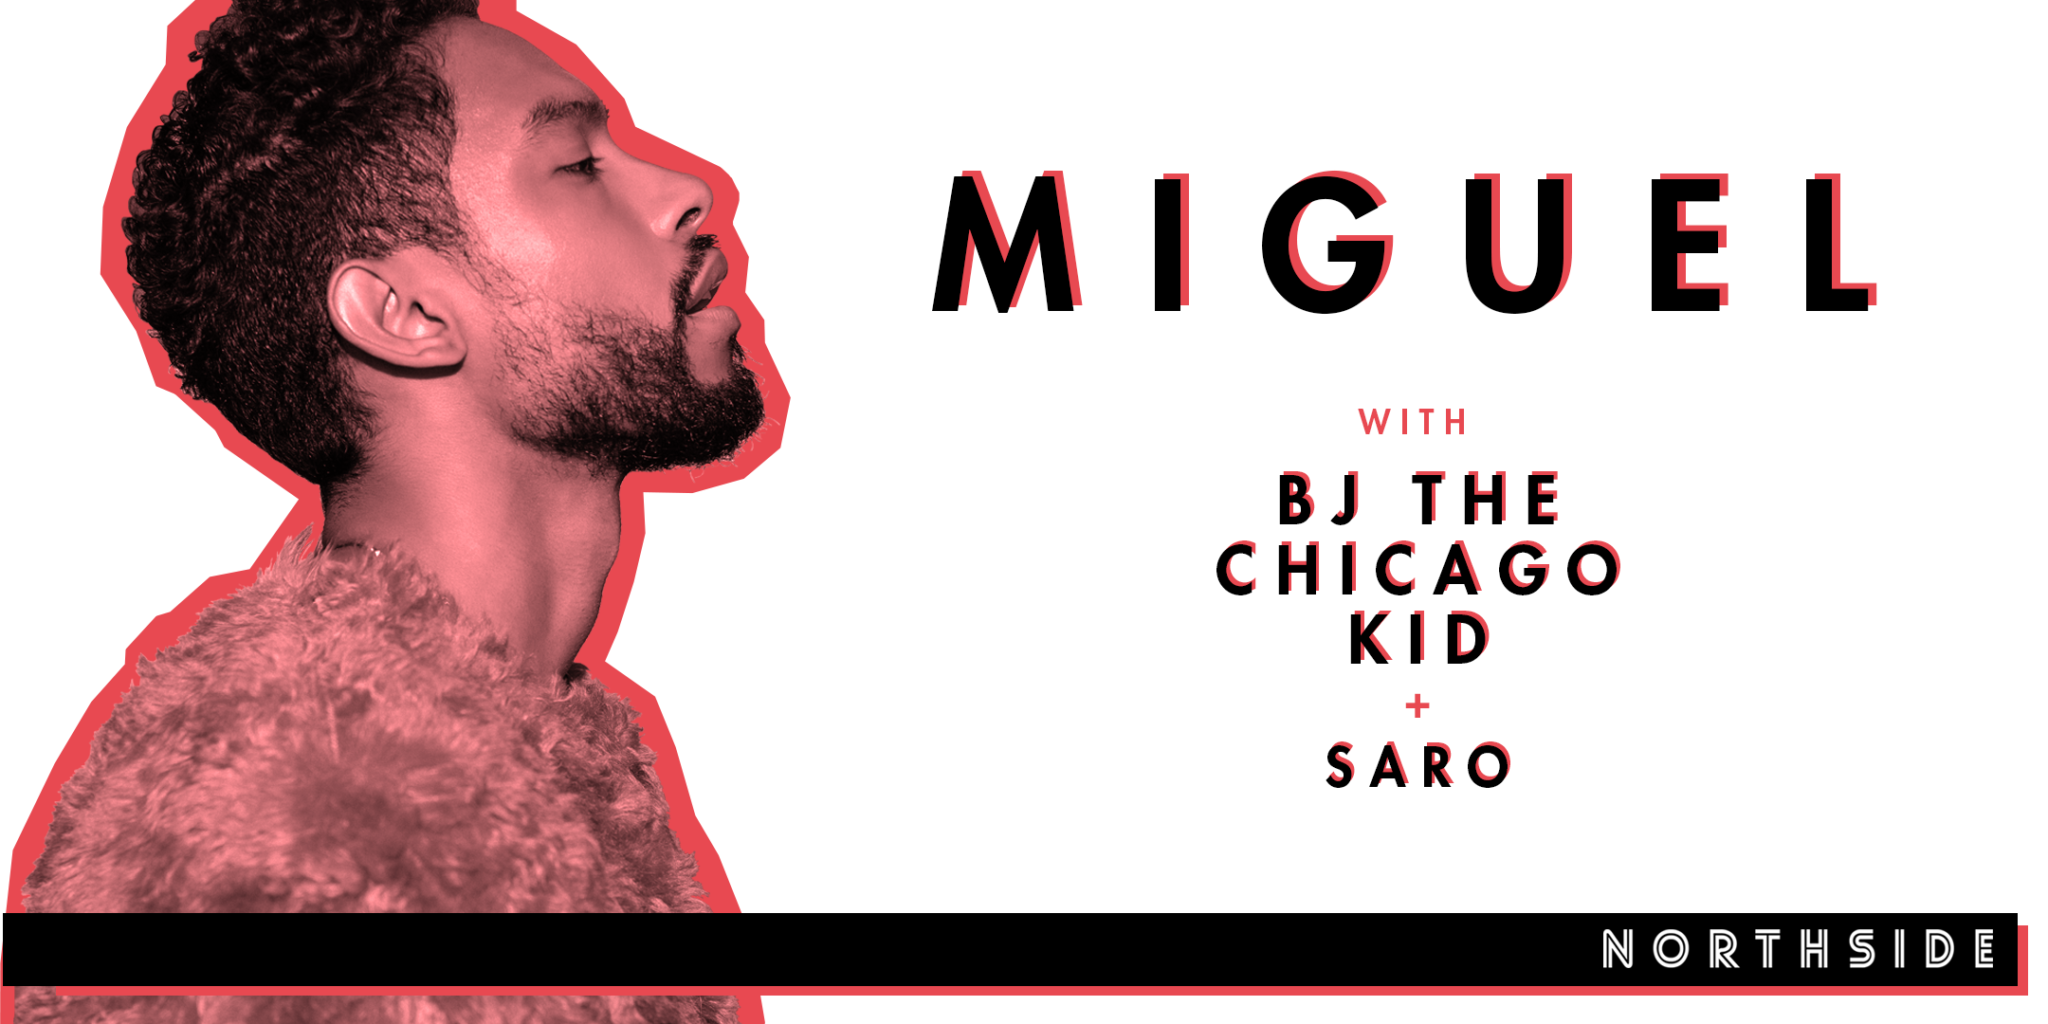 Miguel with BJ The Chicago Kid and Saro at Northside Festival poster